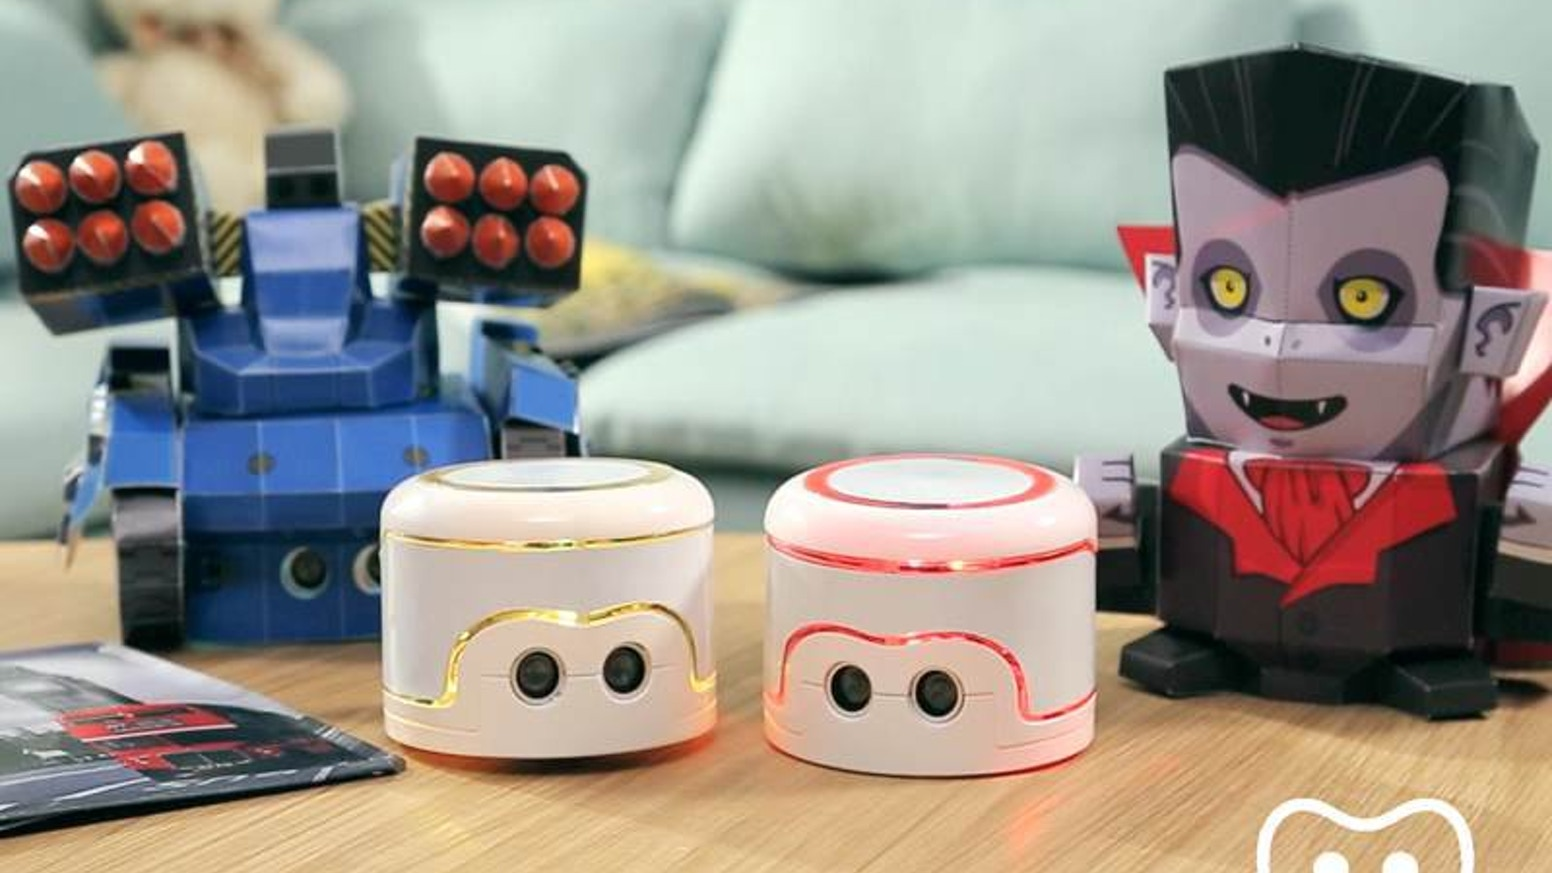 Kamibot is a programmable papercraft robot for kids. They can endlessly customize it with their own code and colorful skins.